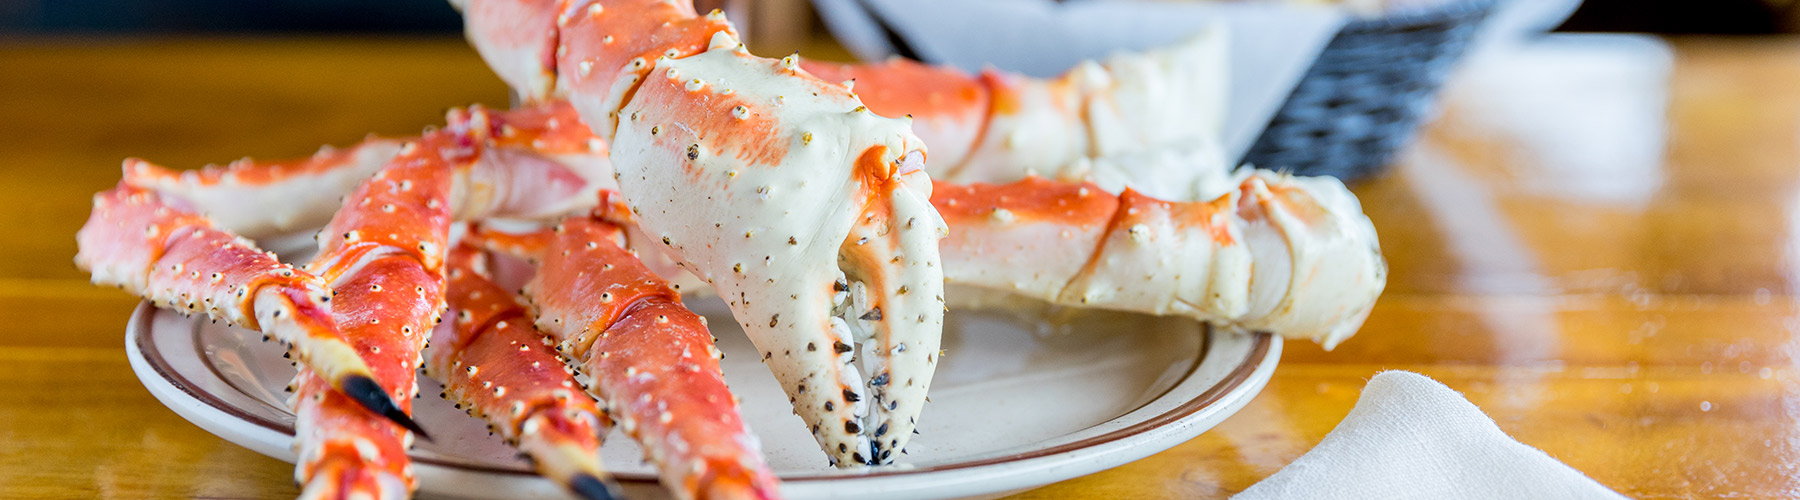 Fresh seafood myrtle beach seafood restaurant steakhouse for Fresh fish store near me